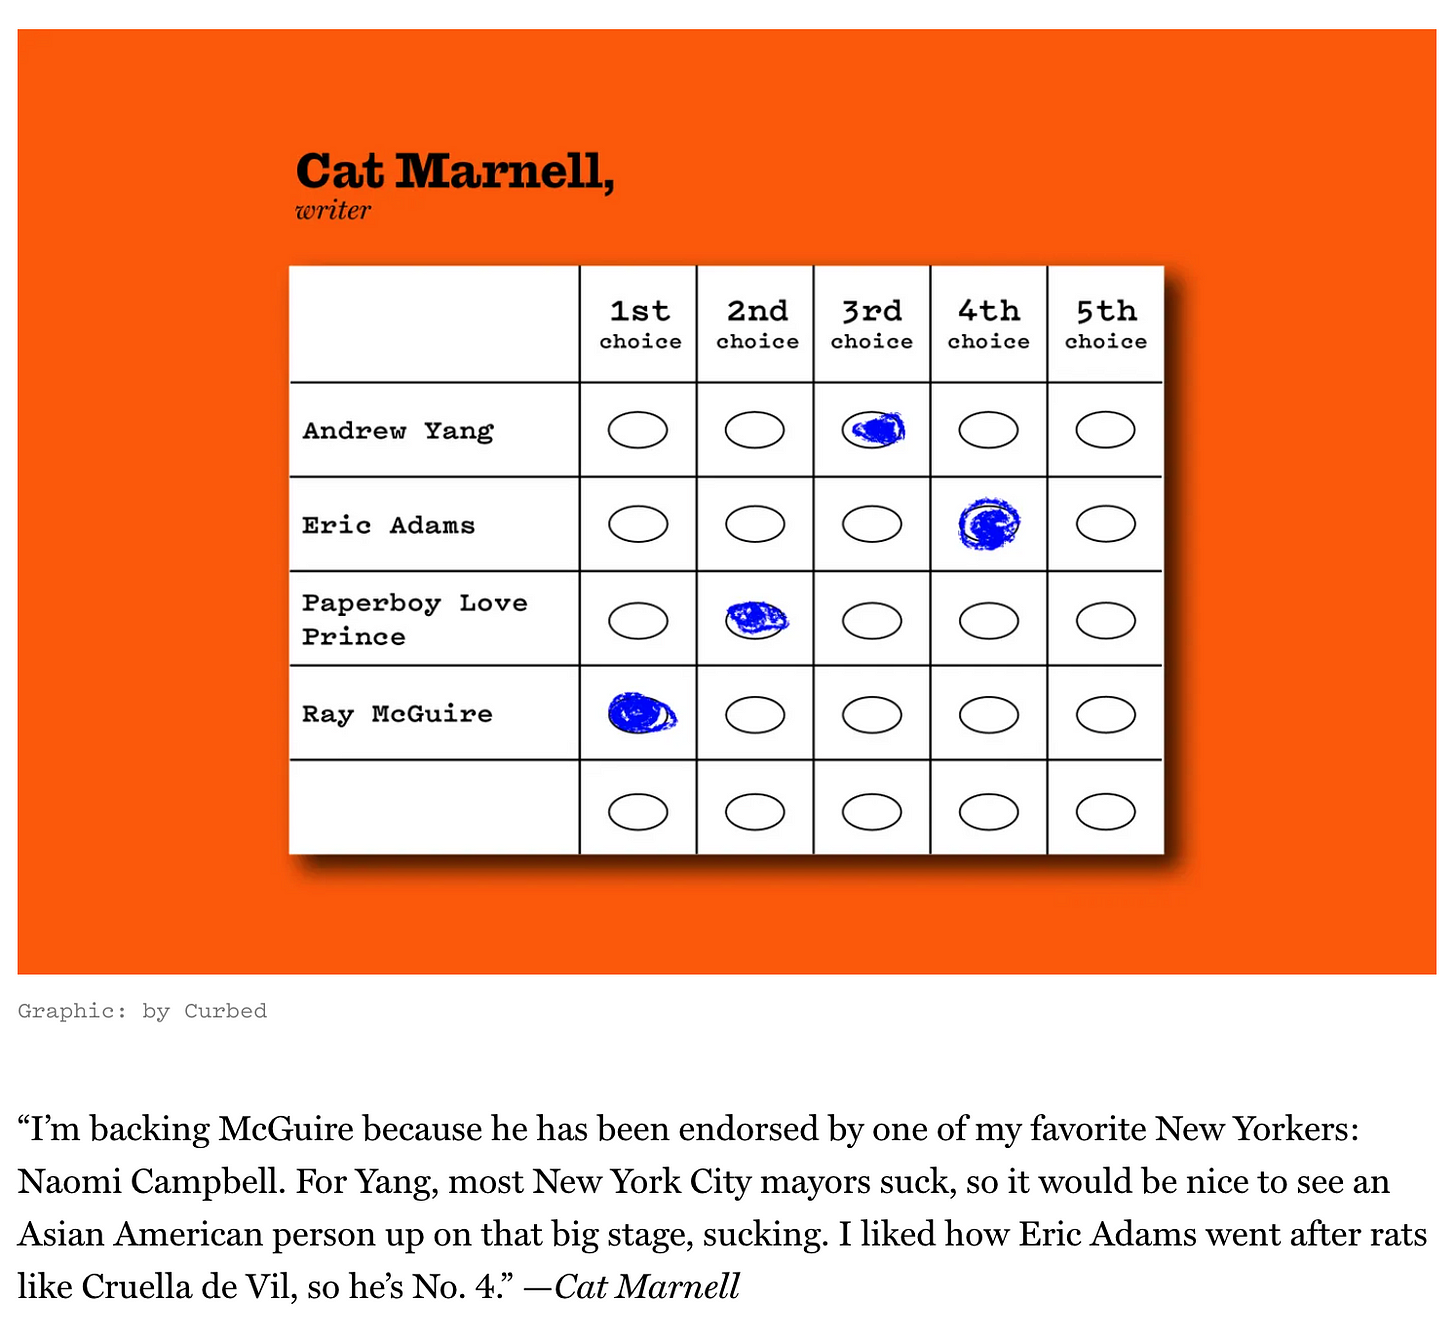 """Screenshot from Curbed showing a picture of Cat Marnell's ballot choices ranked, with the text: """"""""I'm backing McGuire because he has been endorsed by one of my favorite New Yorkers: Naomi Campbell. For Yang, most New York City mayors suck, so it would be nice to see an Asian American person up on that big stage, sucking. I liked how Eric Adams went after rats like Cruella de Vil, so he's No. 4."""" —Cat Marnell"""""""